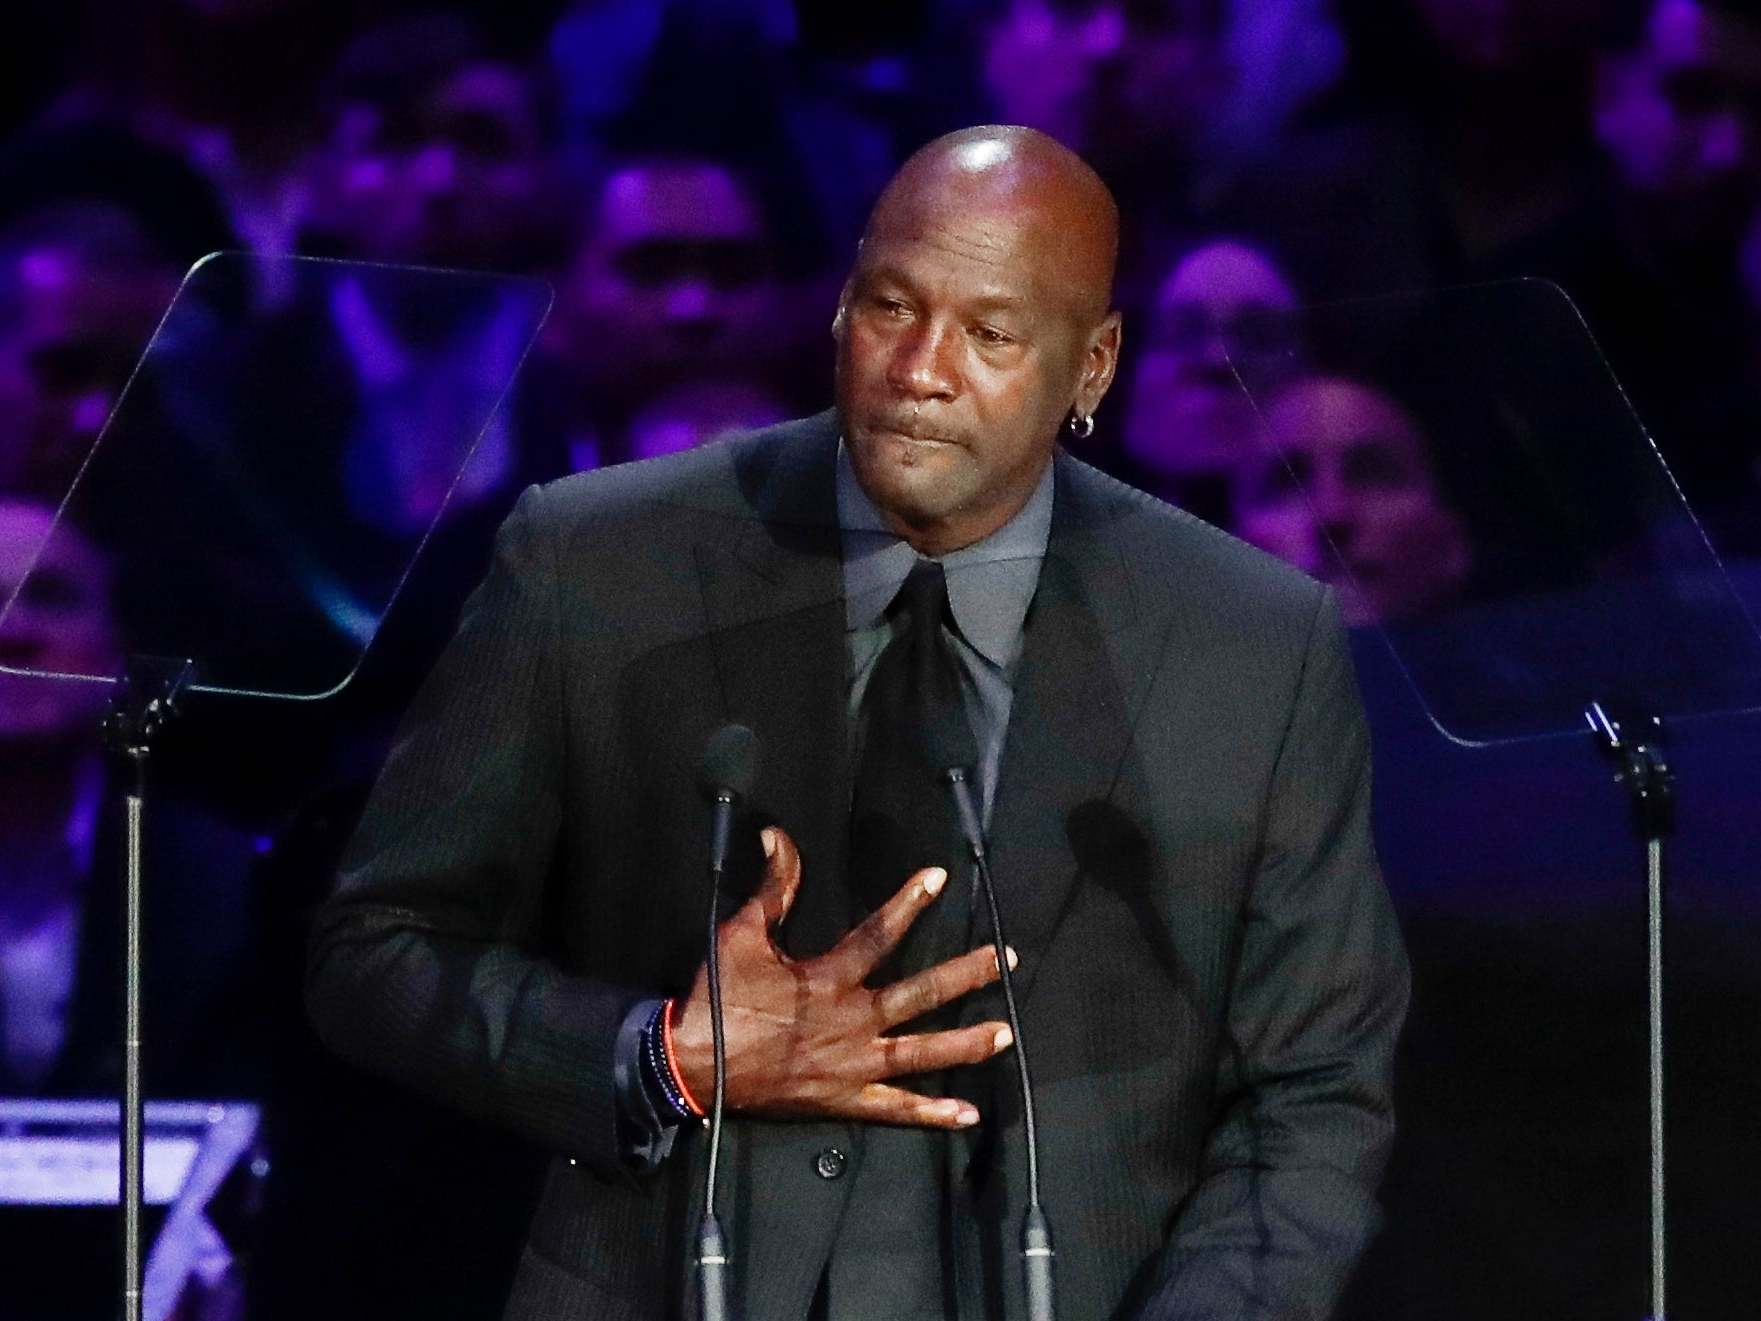 'We have had enough': Michael Jordan issues angry statement following George Floyd death